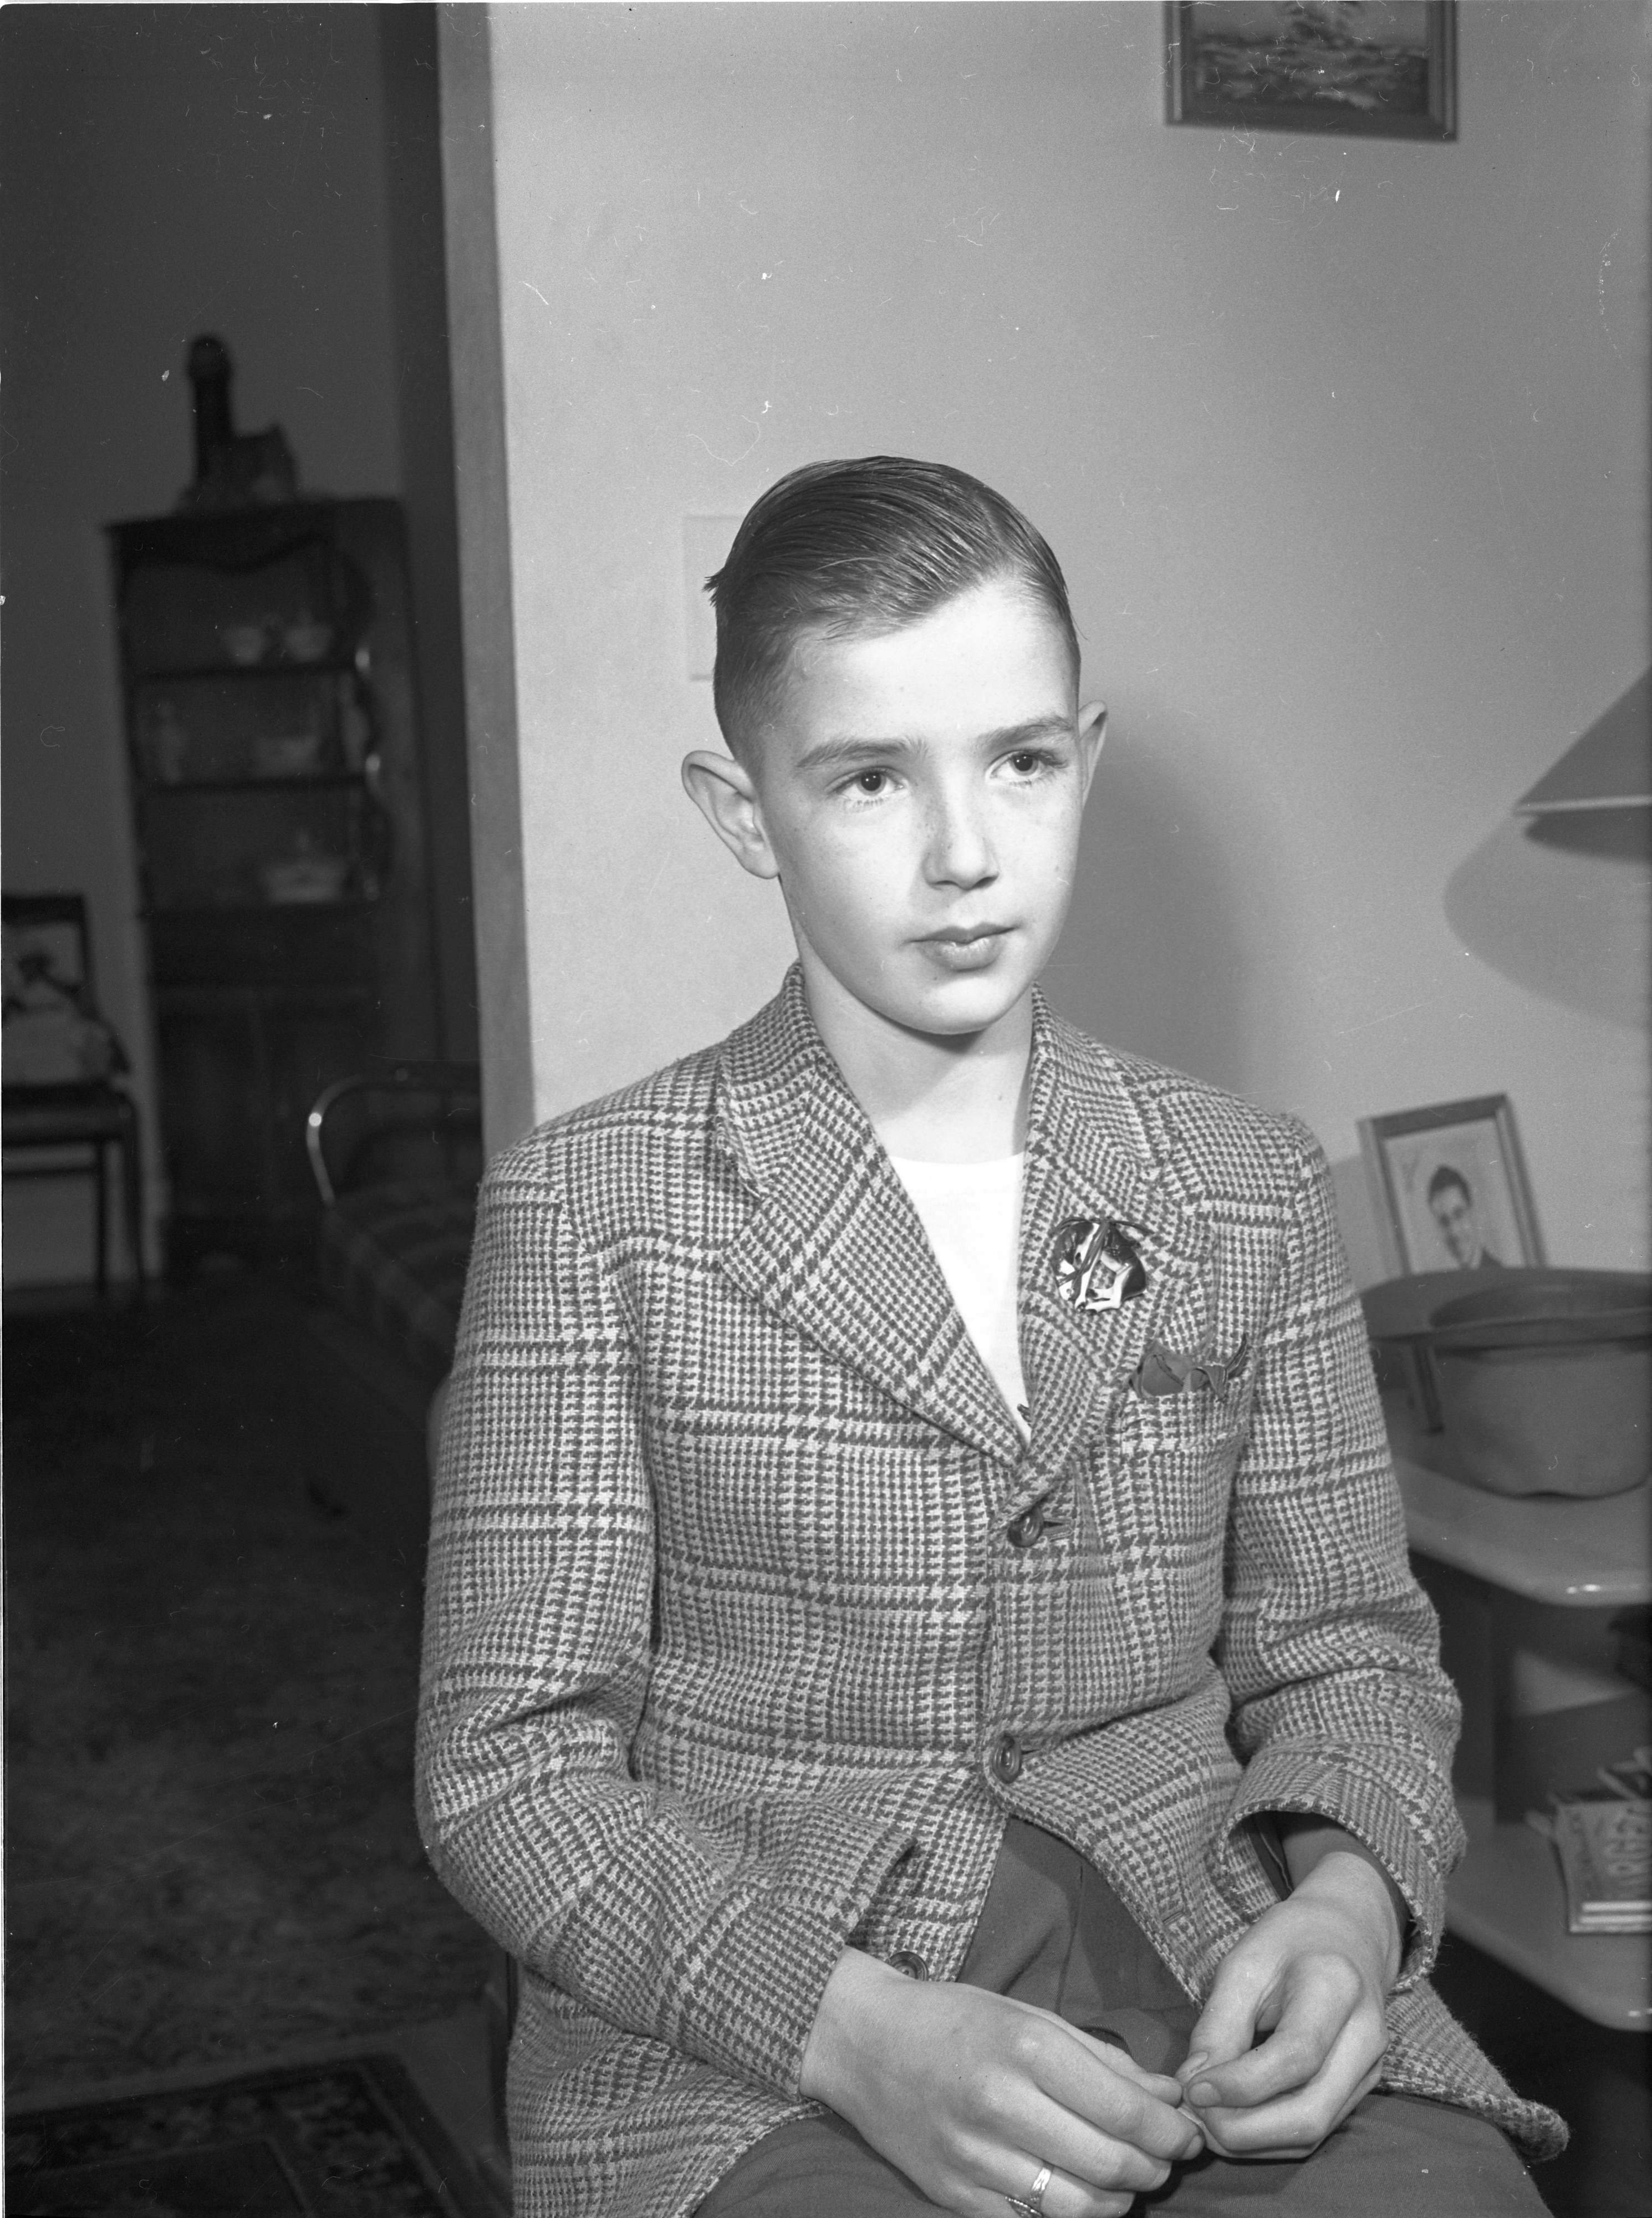 Jack Wall, 11, Admits Holding Gun Which Killed Barry Rothstein, November 1943 image